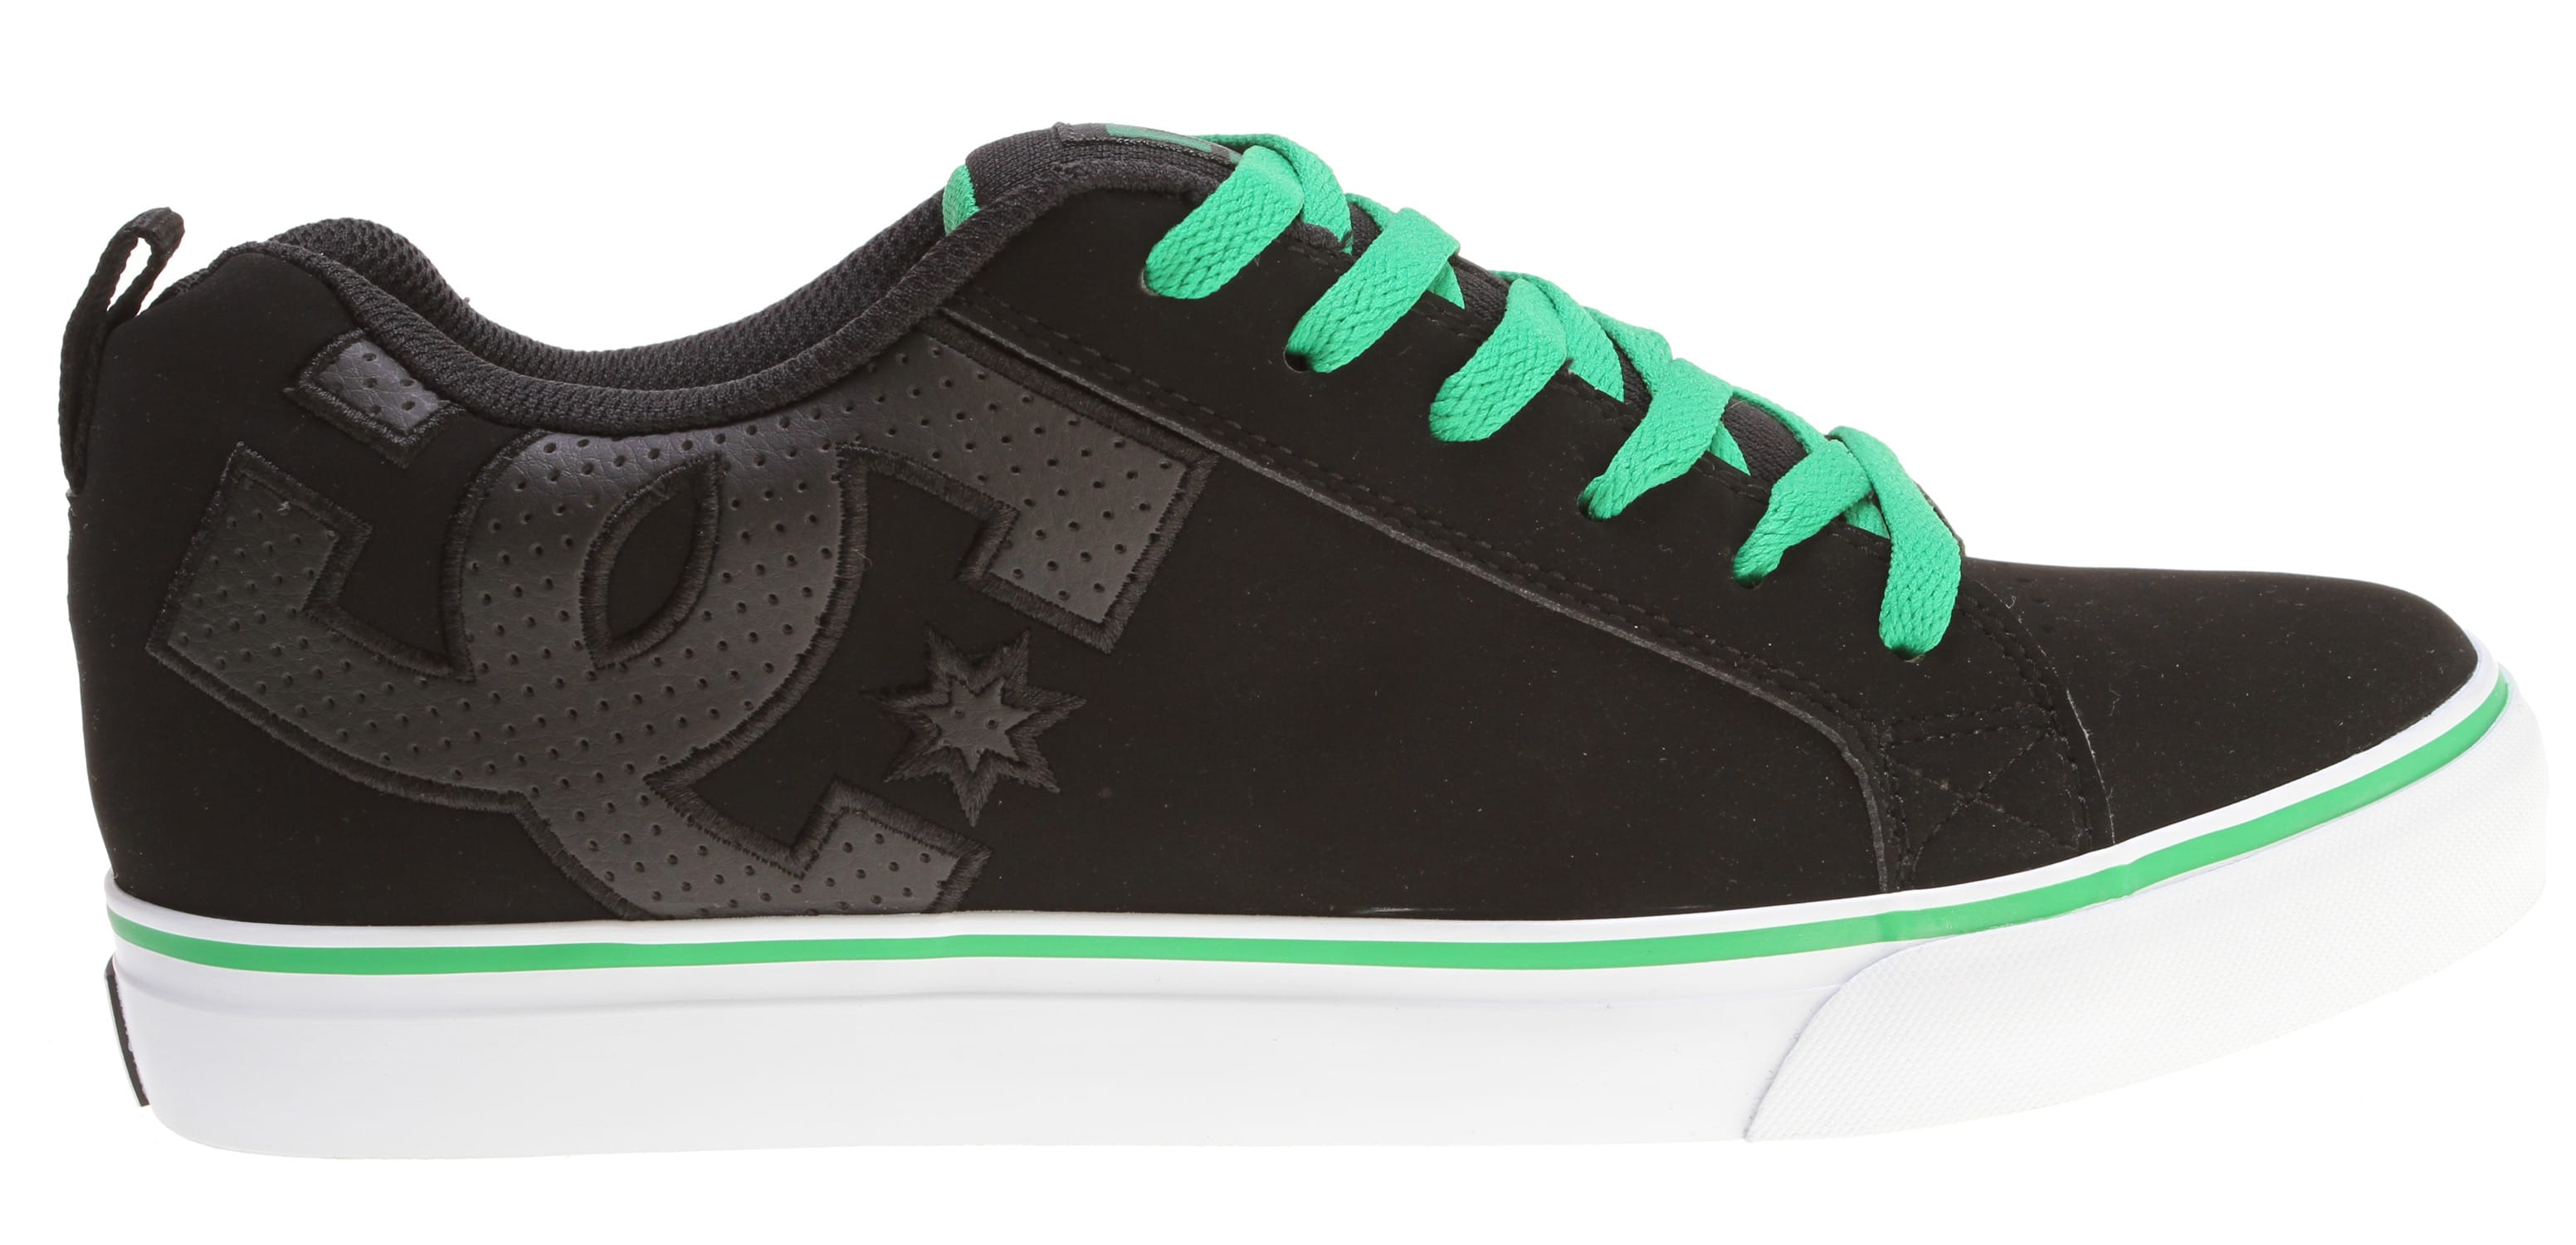 Shop for DC Court Vulc Skate Shoes Black/Green - Men's